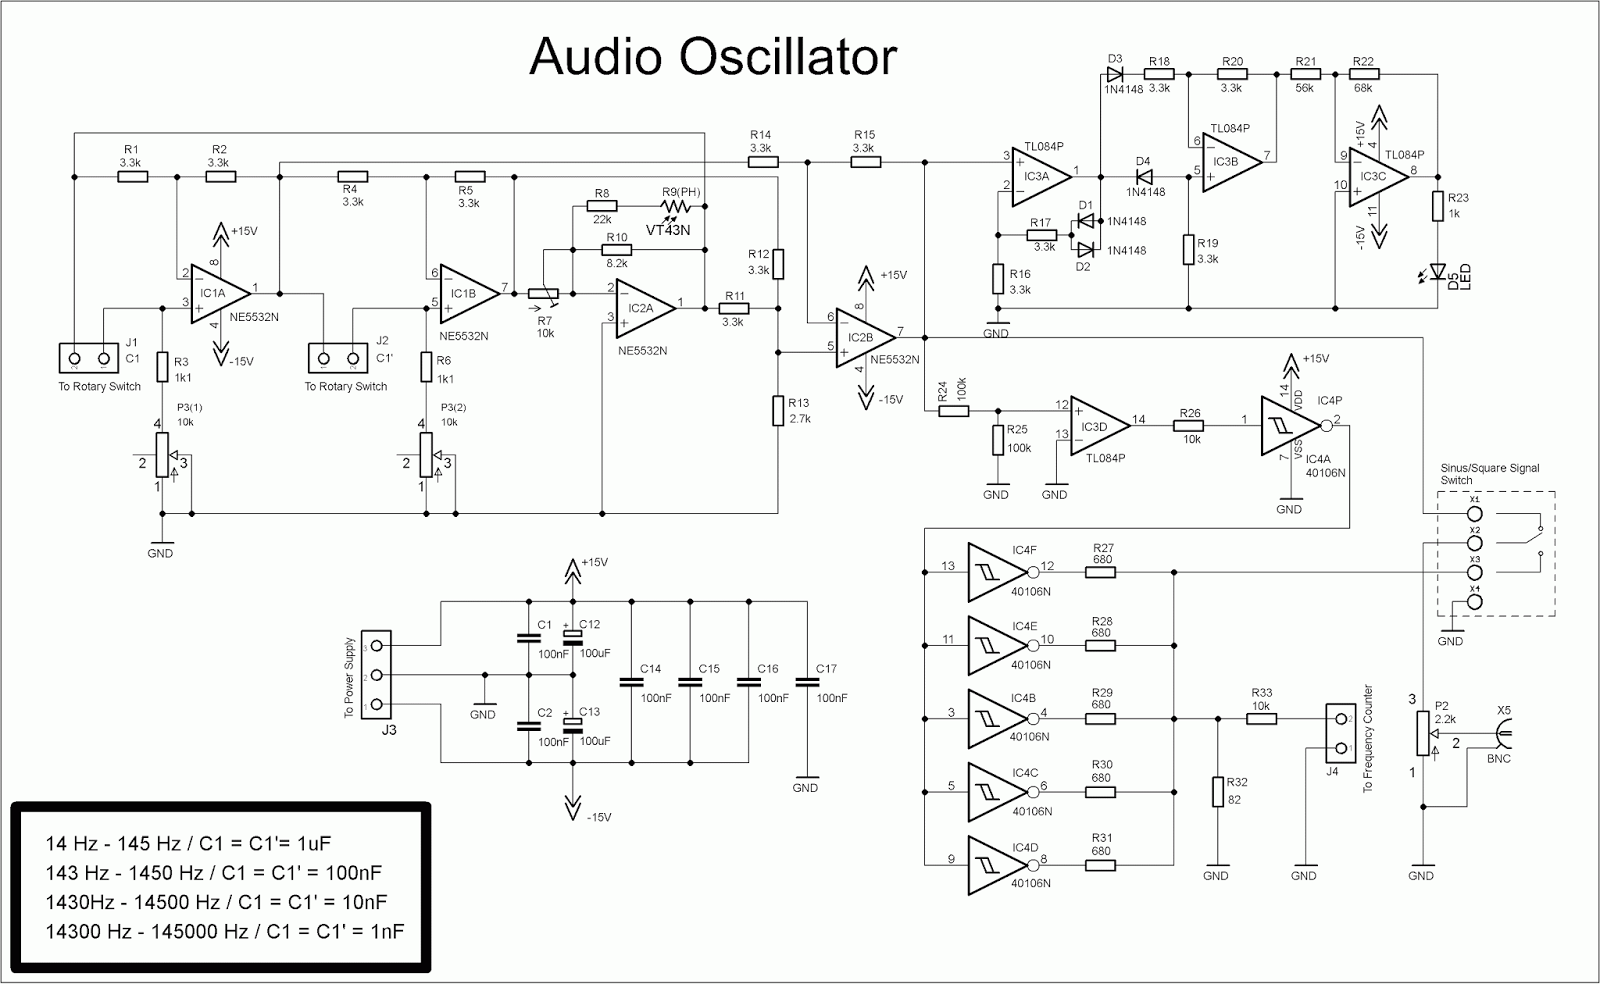 Osc9  Pole Position Rotary Switch Schematic on four pole switch, 6 pos rotary cam switch, leviton rotary switch, 4 position selector switch, 2 pole light switch, mobile rotary switch, 4 pole slide switch, two pole three-way rotary switch, 4 position rotary key switch, 4 position rotary limit switch, 4 pole switch diagram,